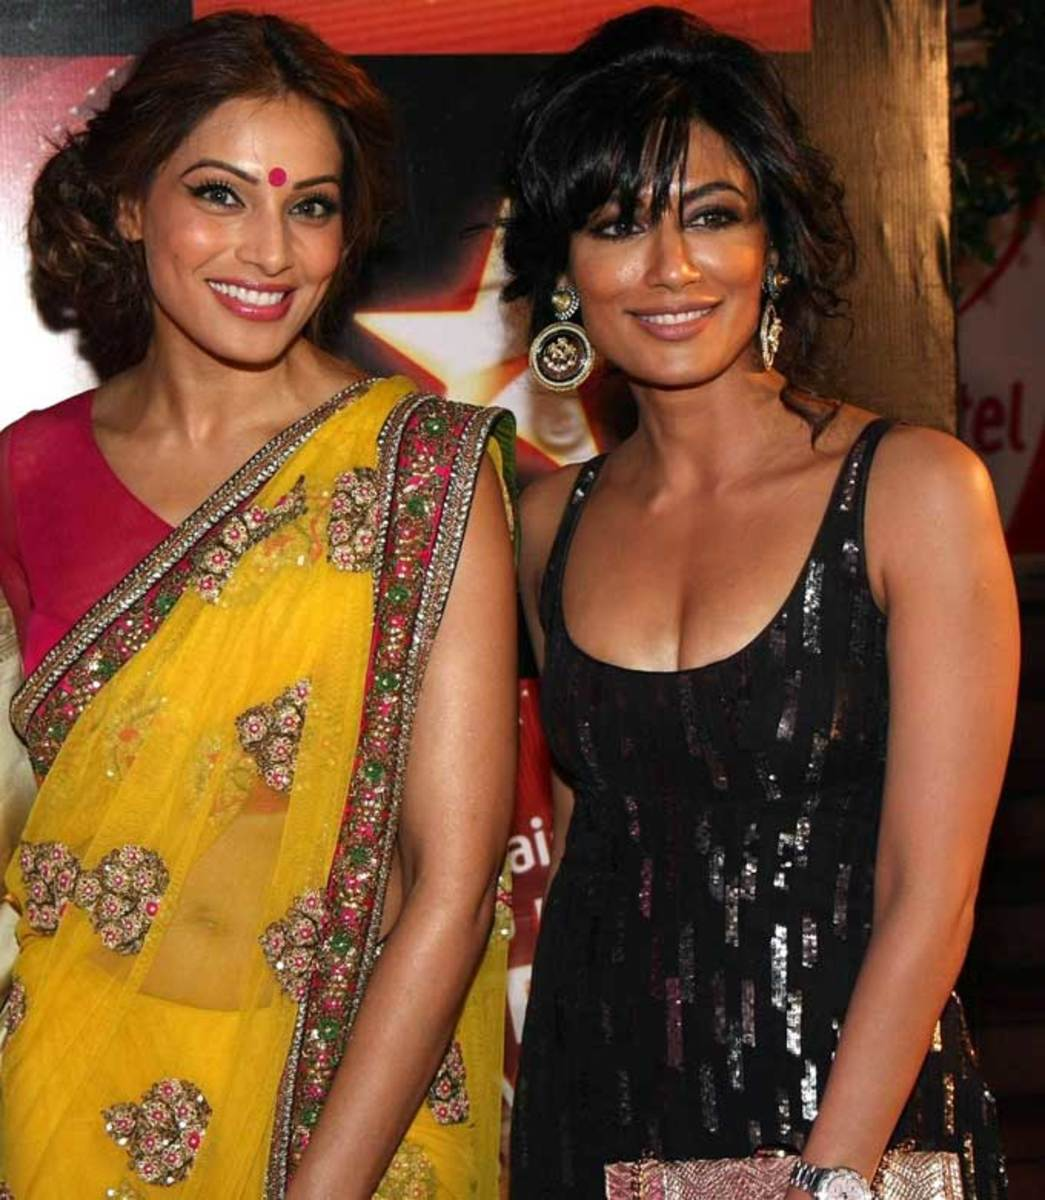 Chitrangada Singh with Bipasha Basu, Two dusky beauties